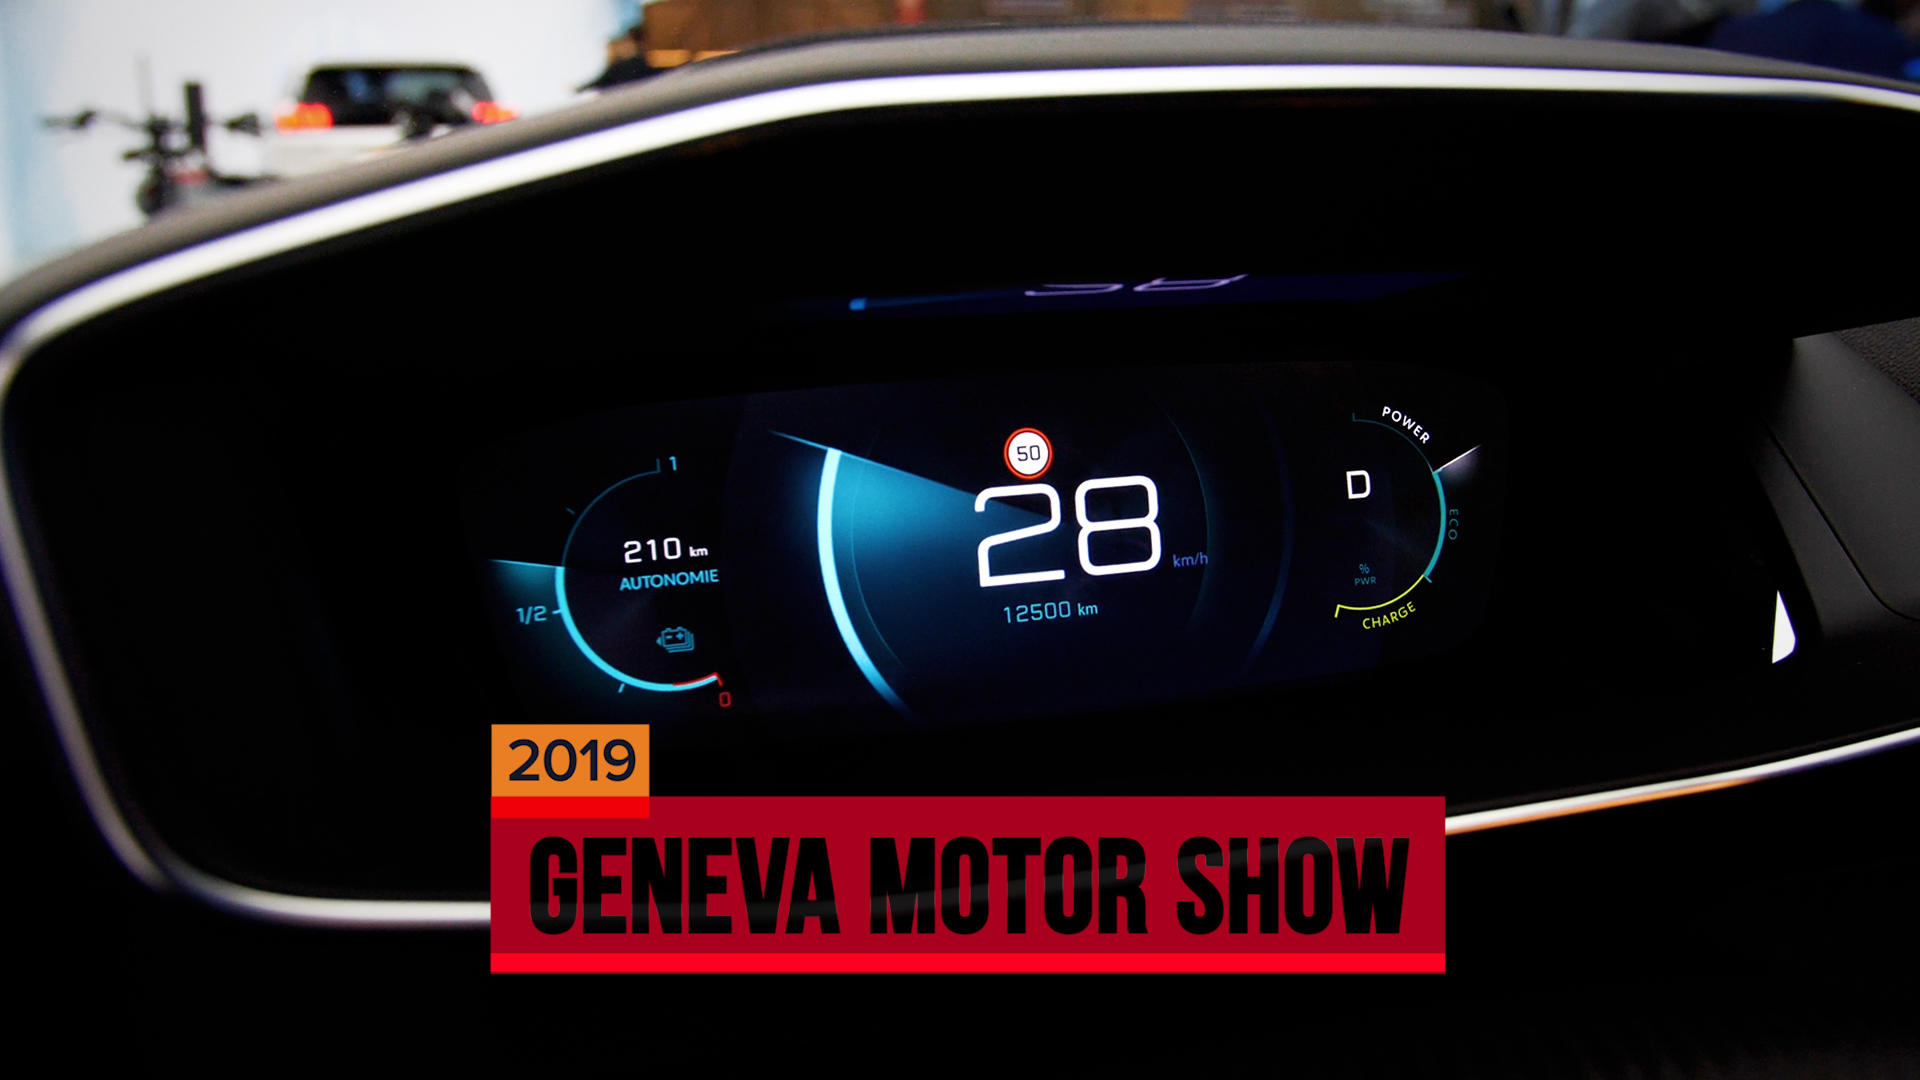 Video: New Peugeot 208 debuts i-Cockpit with 3D HUD Combo dashboard